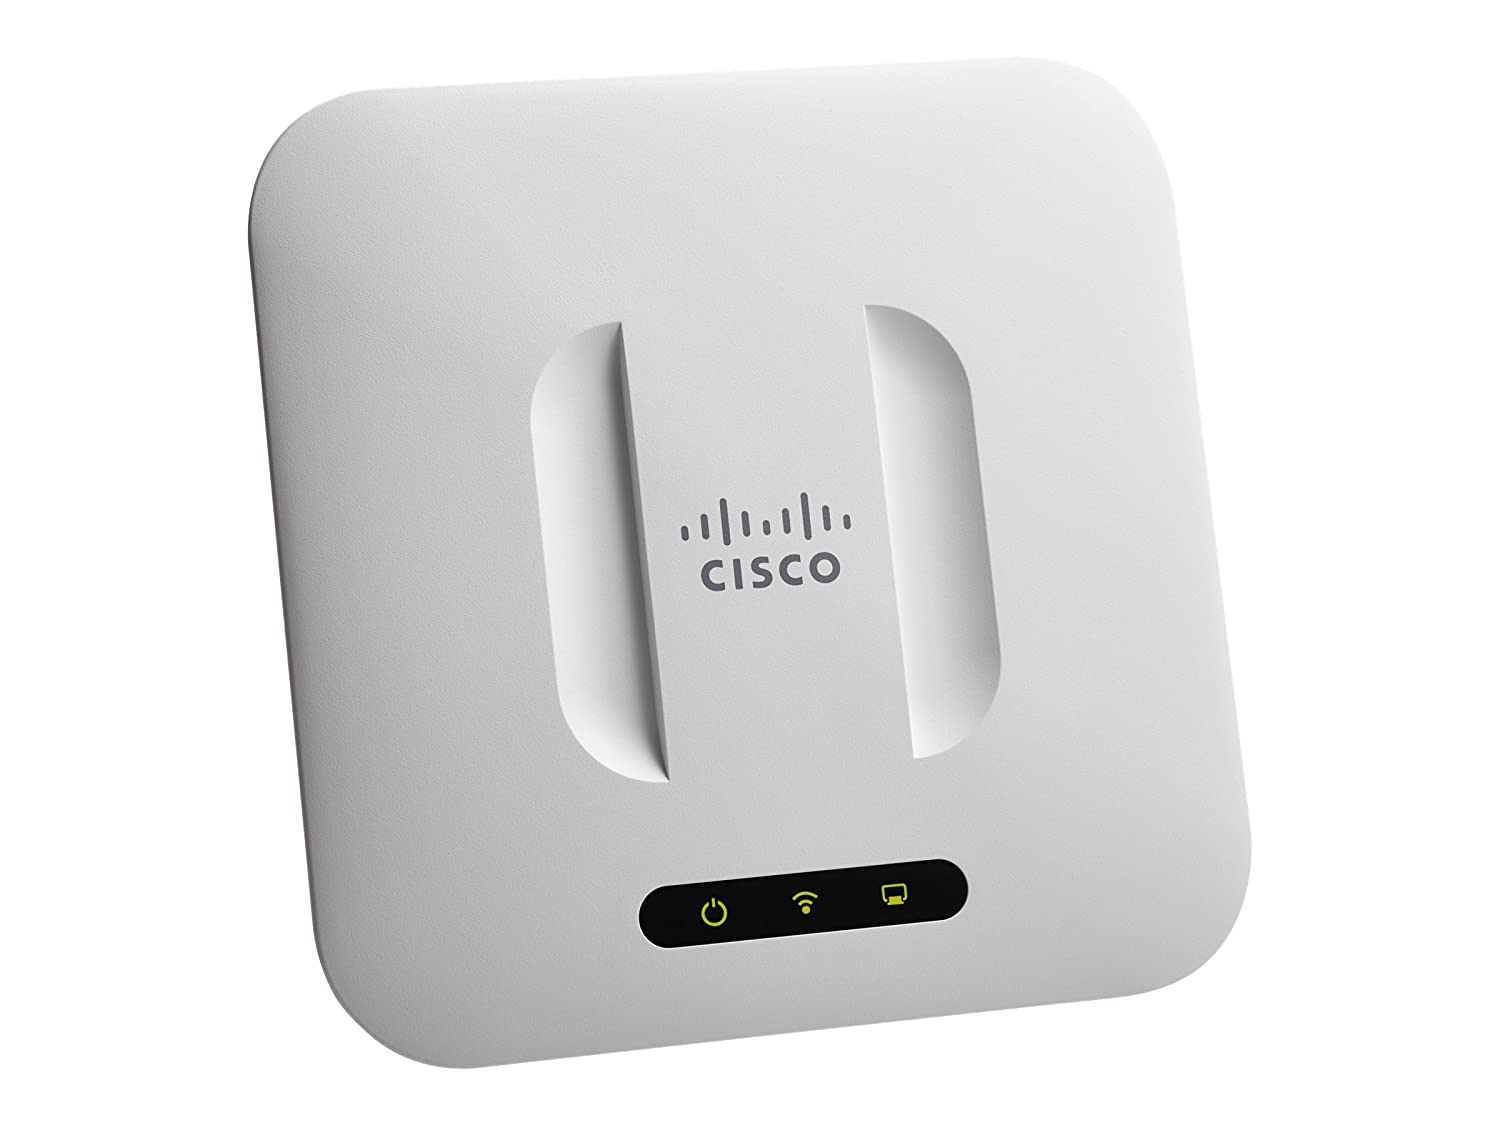 Cisco Small Business Wap371 A K9 Wireless Ac N Dual Router Rb931 2nd Hap Mini Radio Access Point With Single Setup Computers Accessories